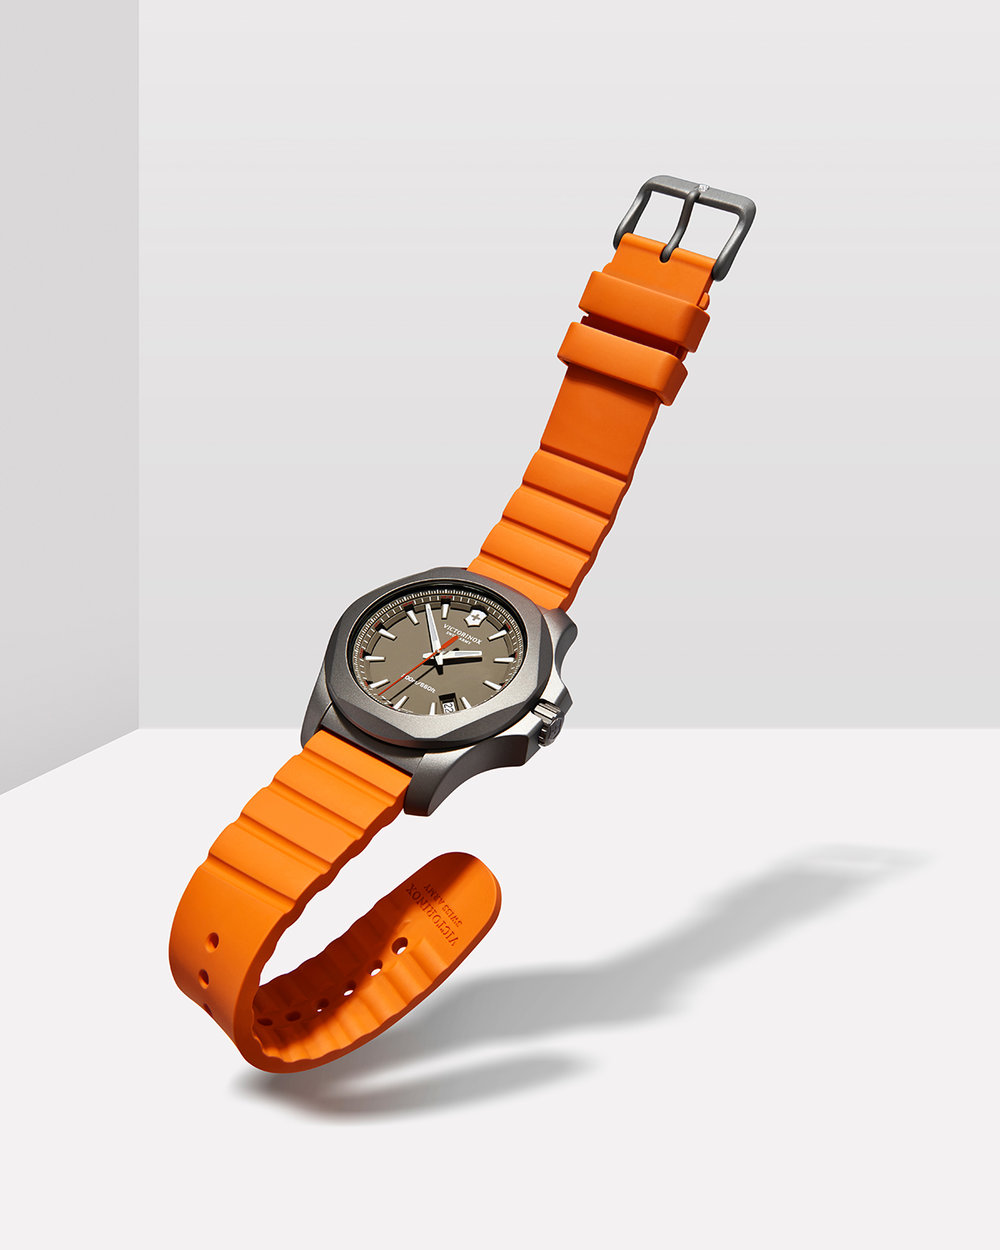 tom-medvedich-still-life-jewelry-watches-victorinox-inox-orange-01.jpg